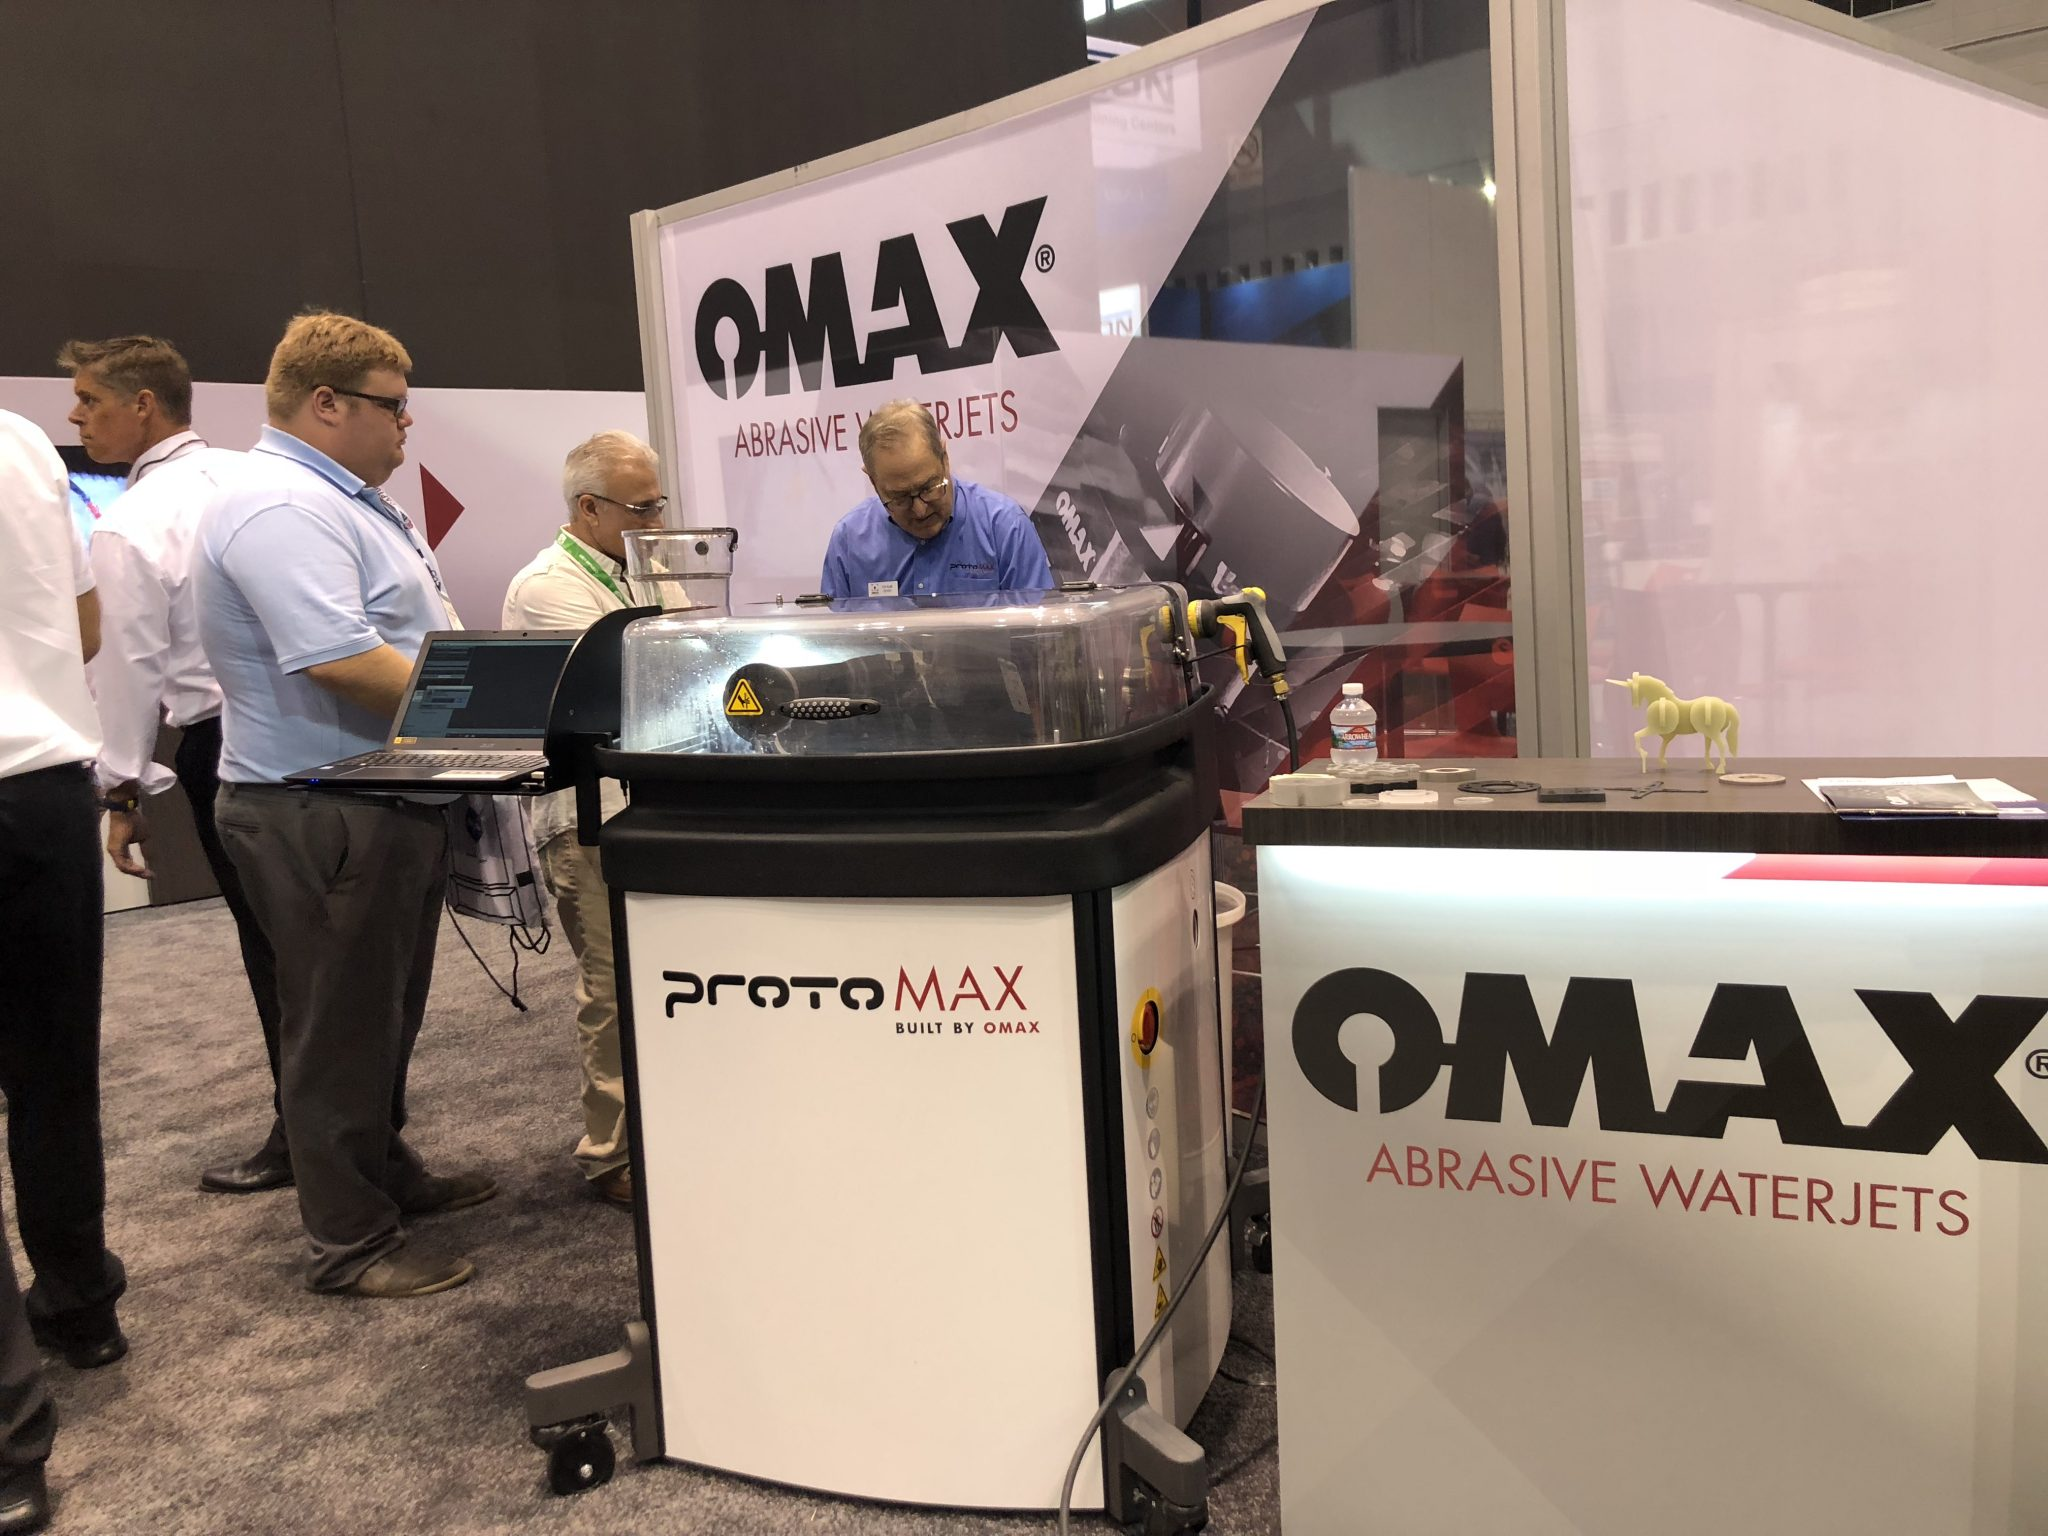 ProtoMAX Abrasive Waterjet from OMAX on Display at PRI